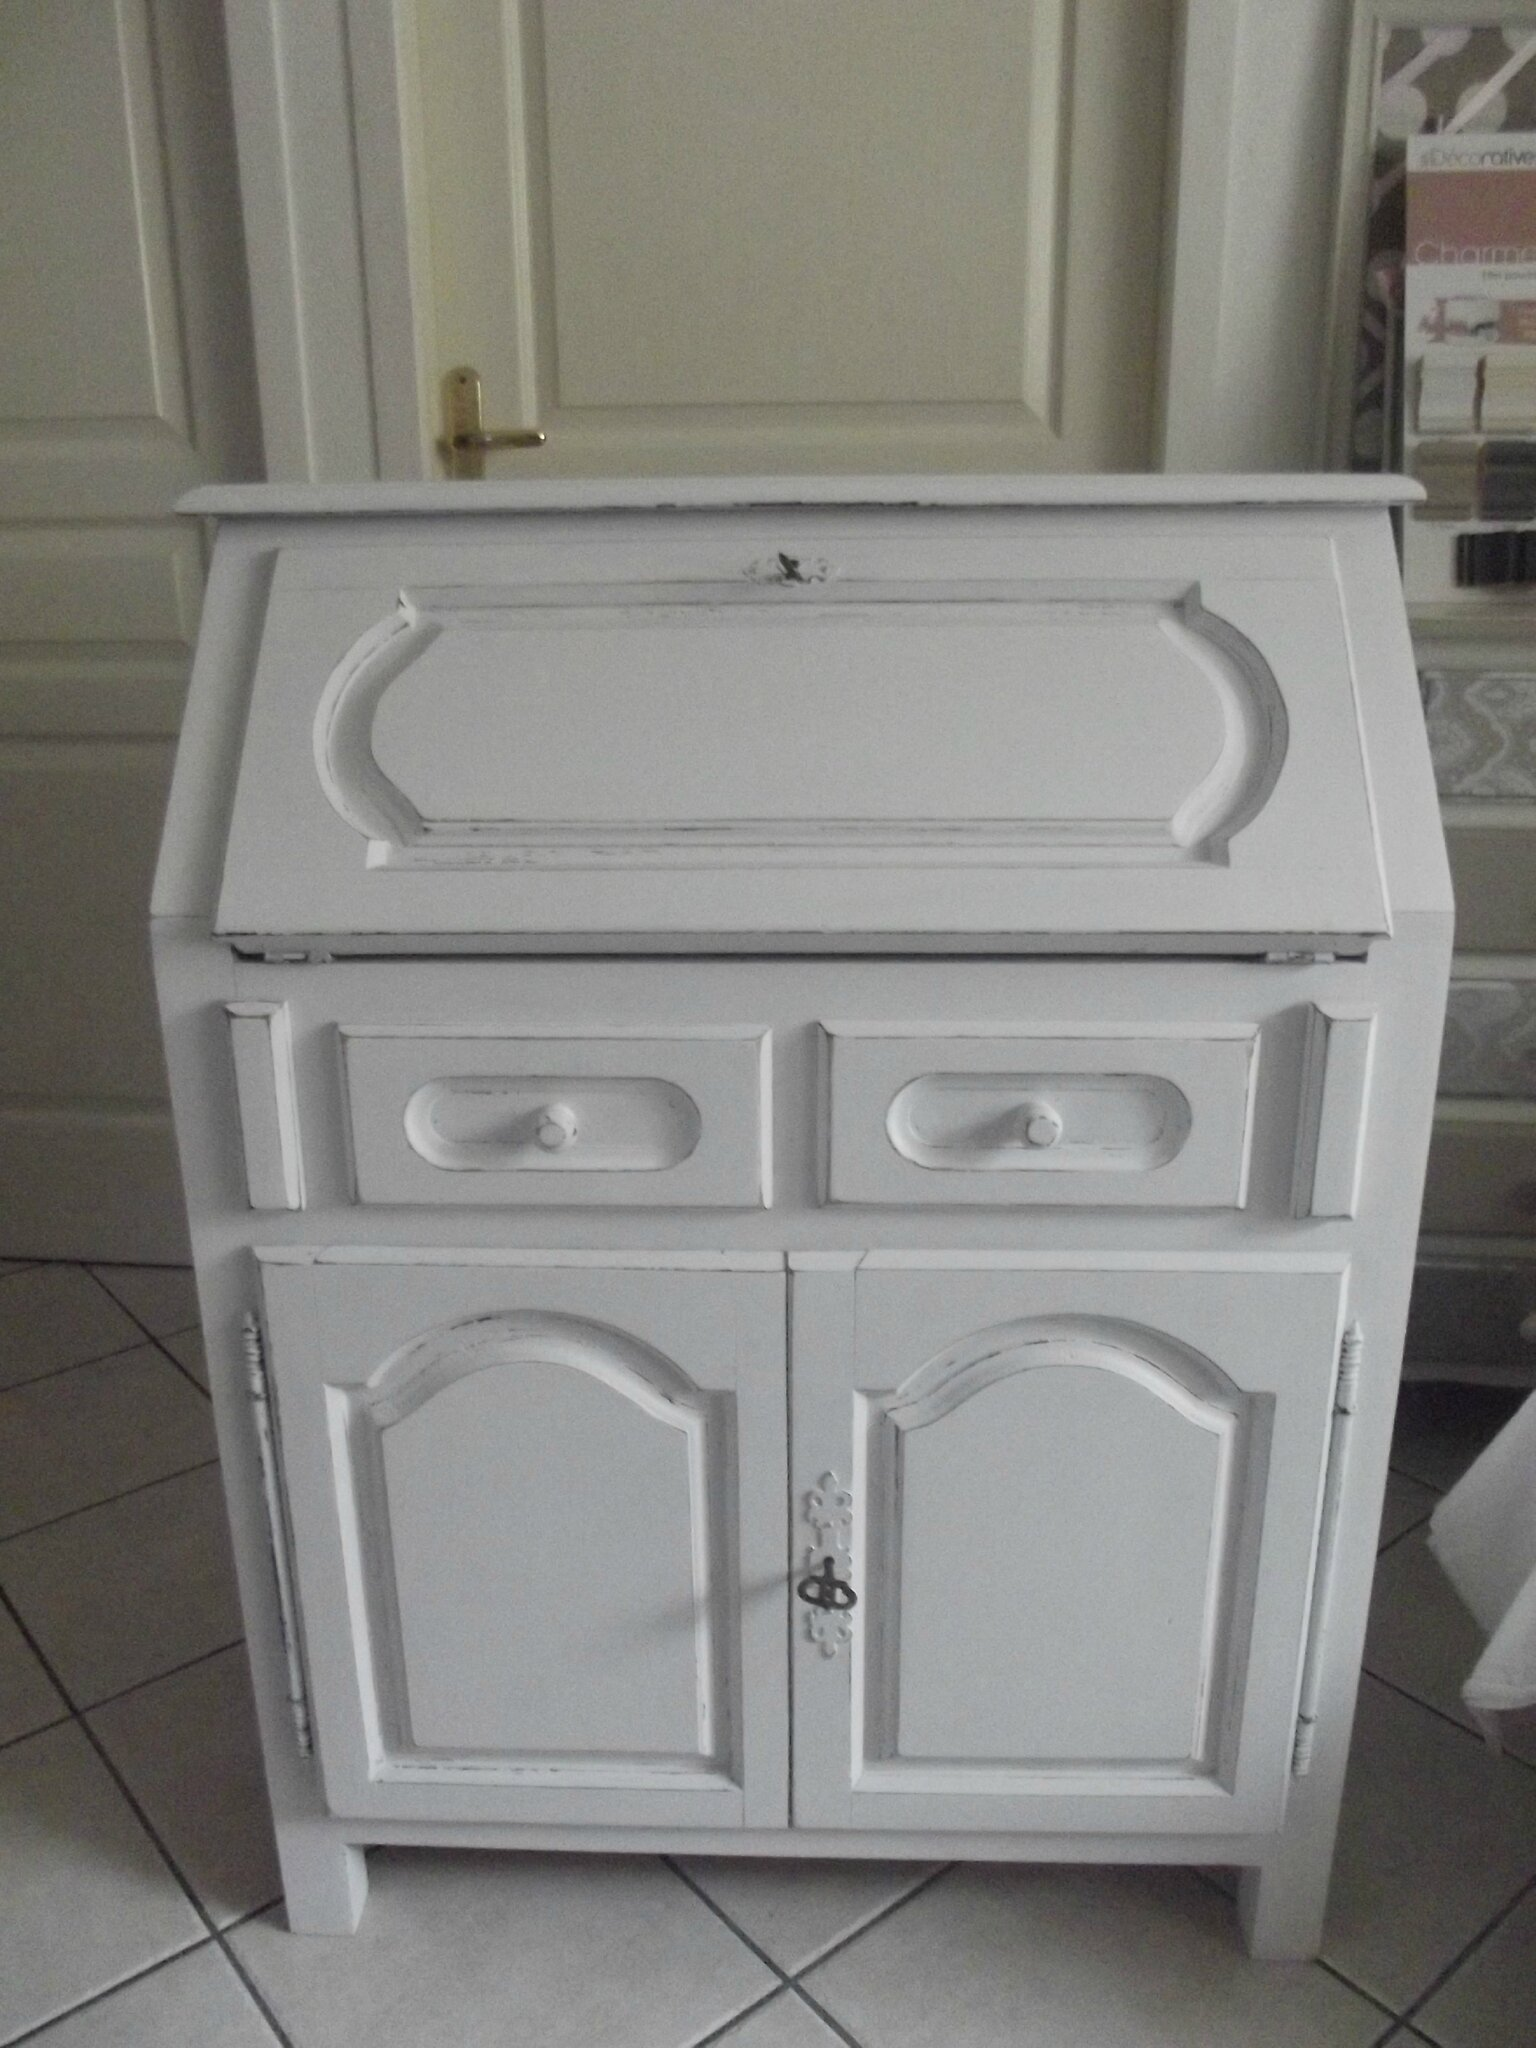 Meuble Secretaire Blanc Meuble Secretaire Blanc Latest With Meuble Secretaire Blanc